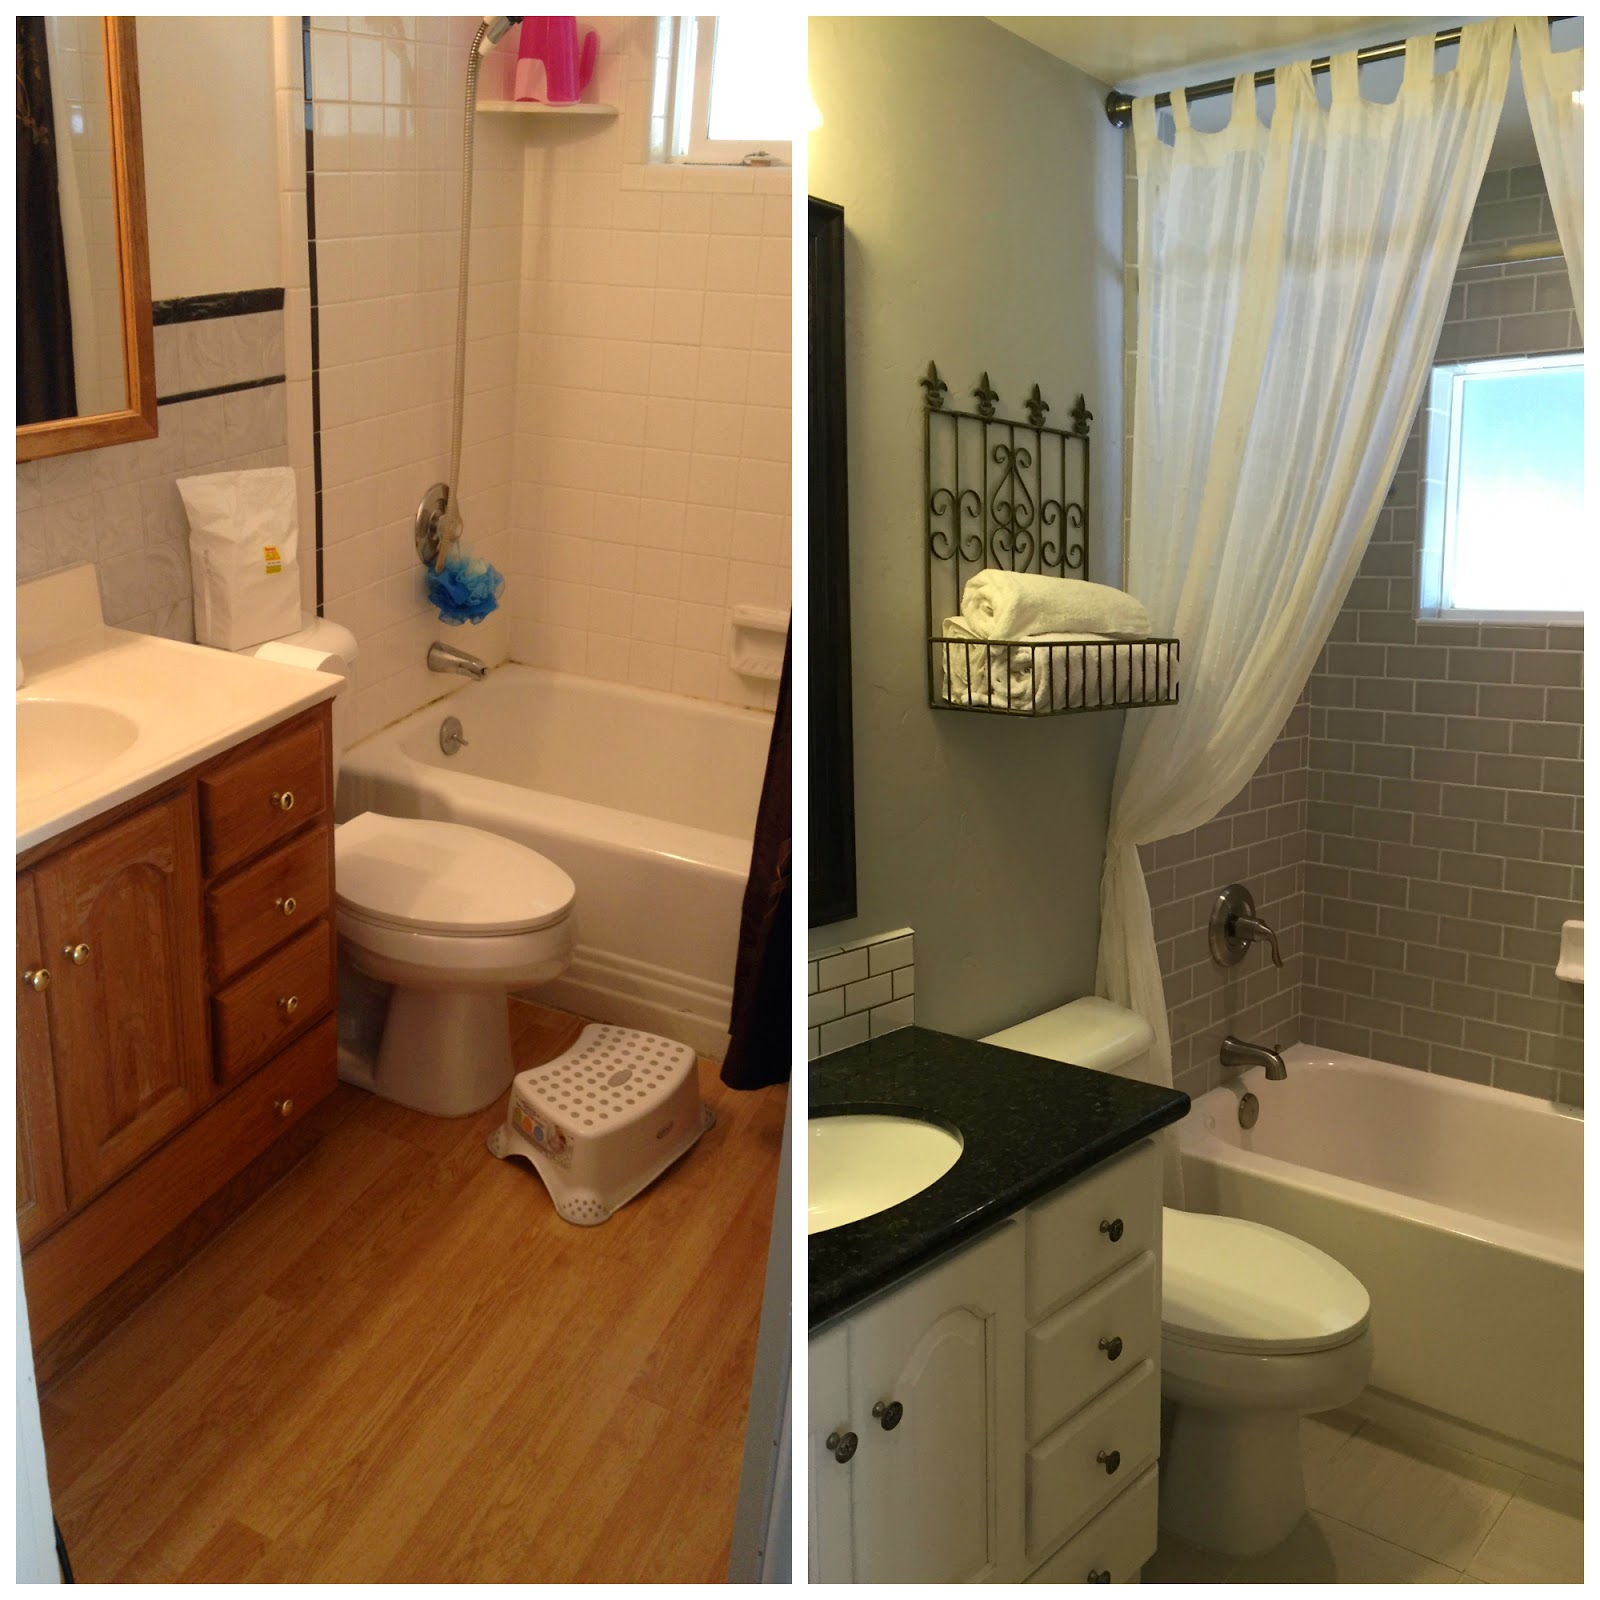 April All Year: Small Bathroom Renovation